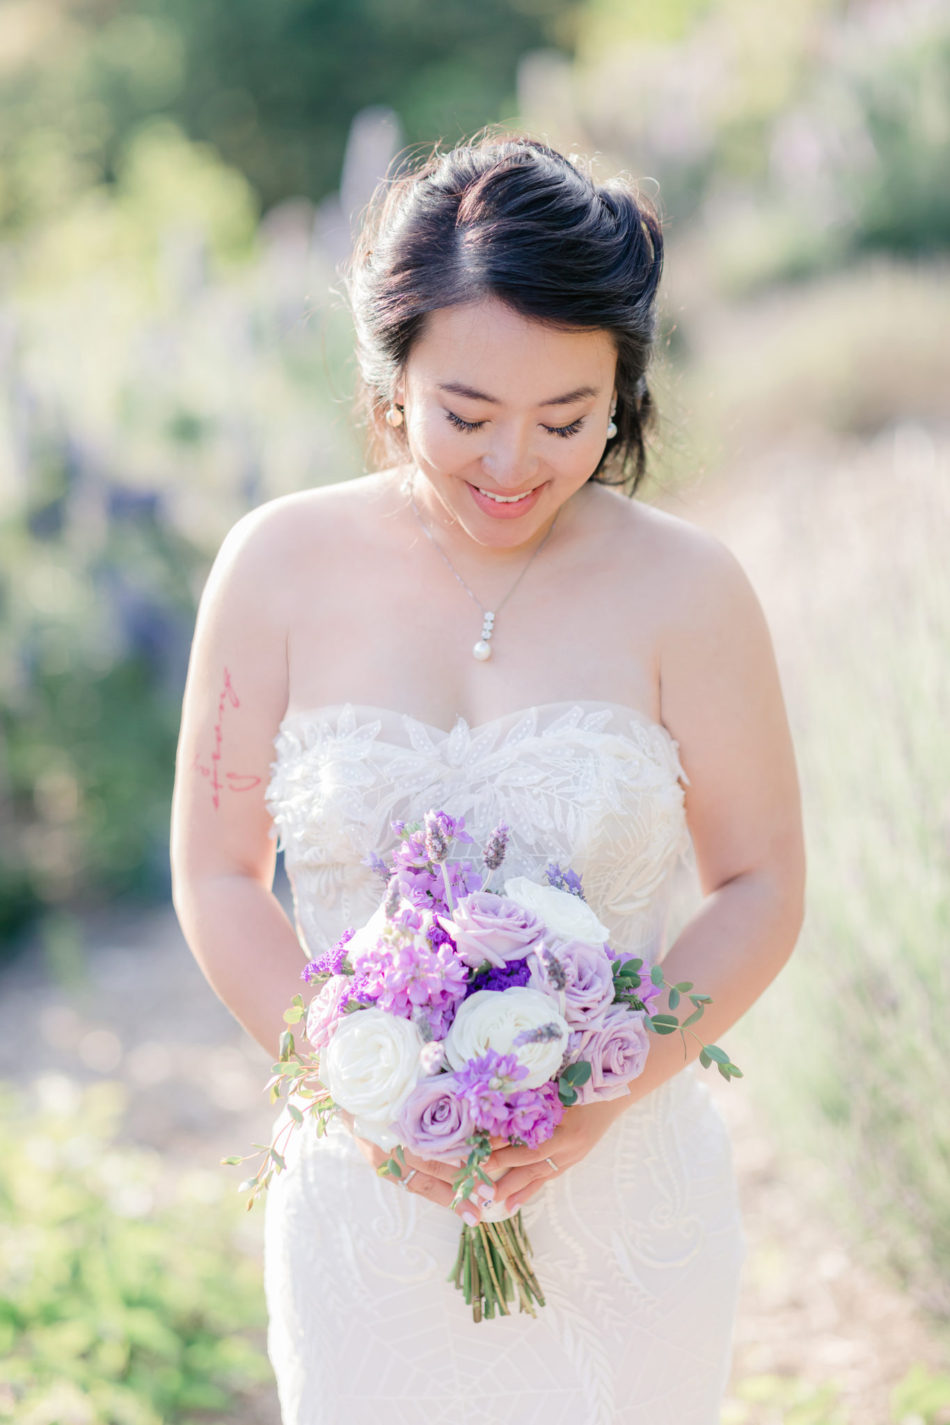 purple bridal bouquet, purple bouquet, bride, floral design, florist, wedding florist, wedding flowers, orange county weddings, orange county wedding florist, orange county florist, orange county floral design, flowers by cina